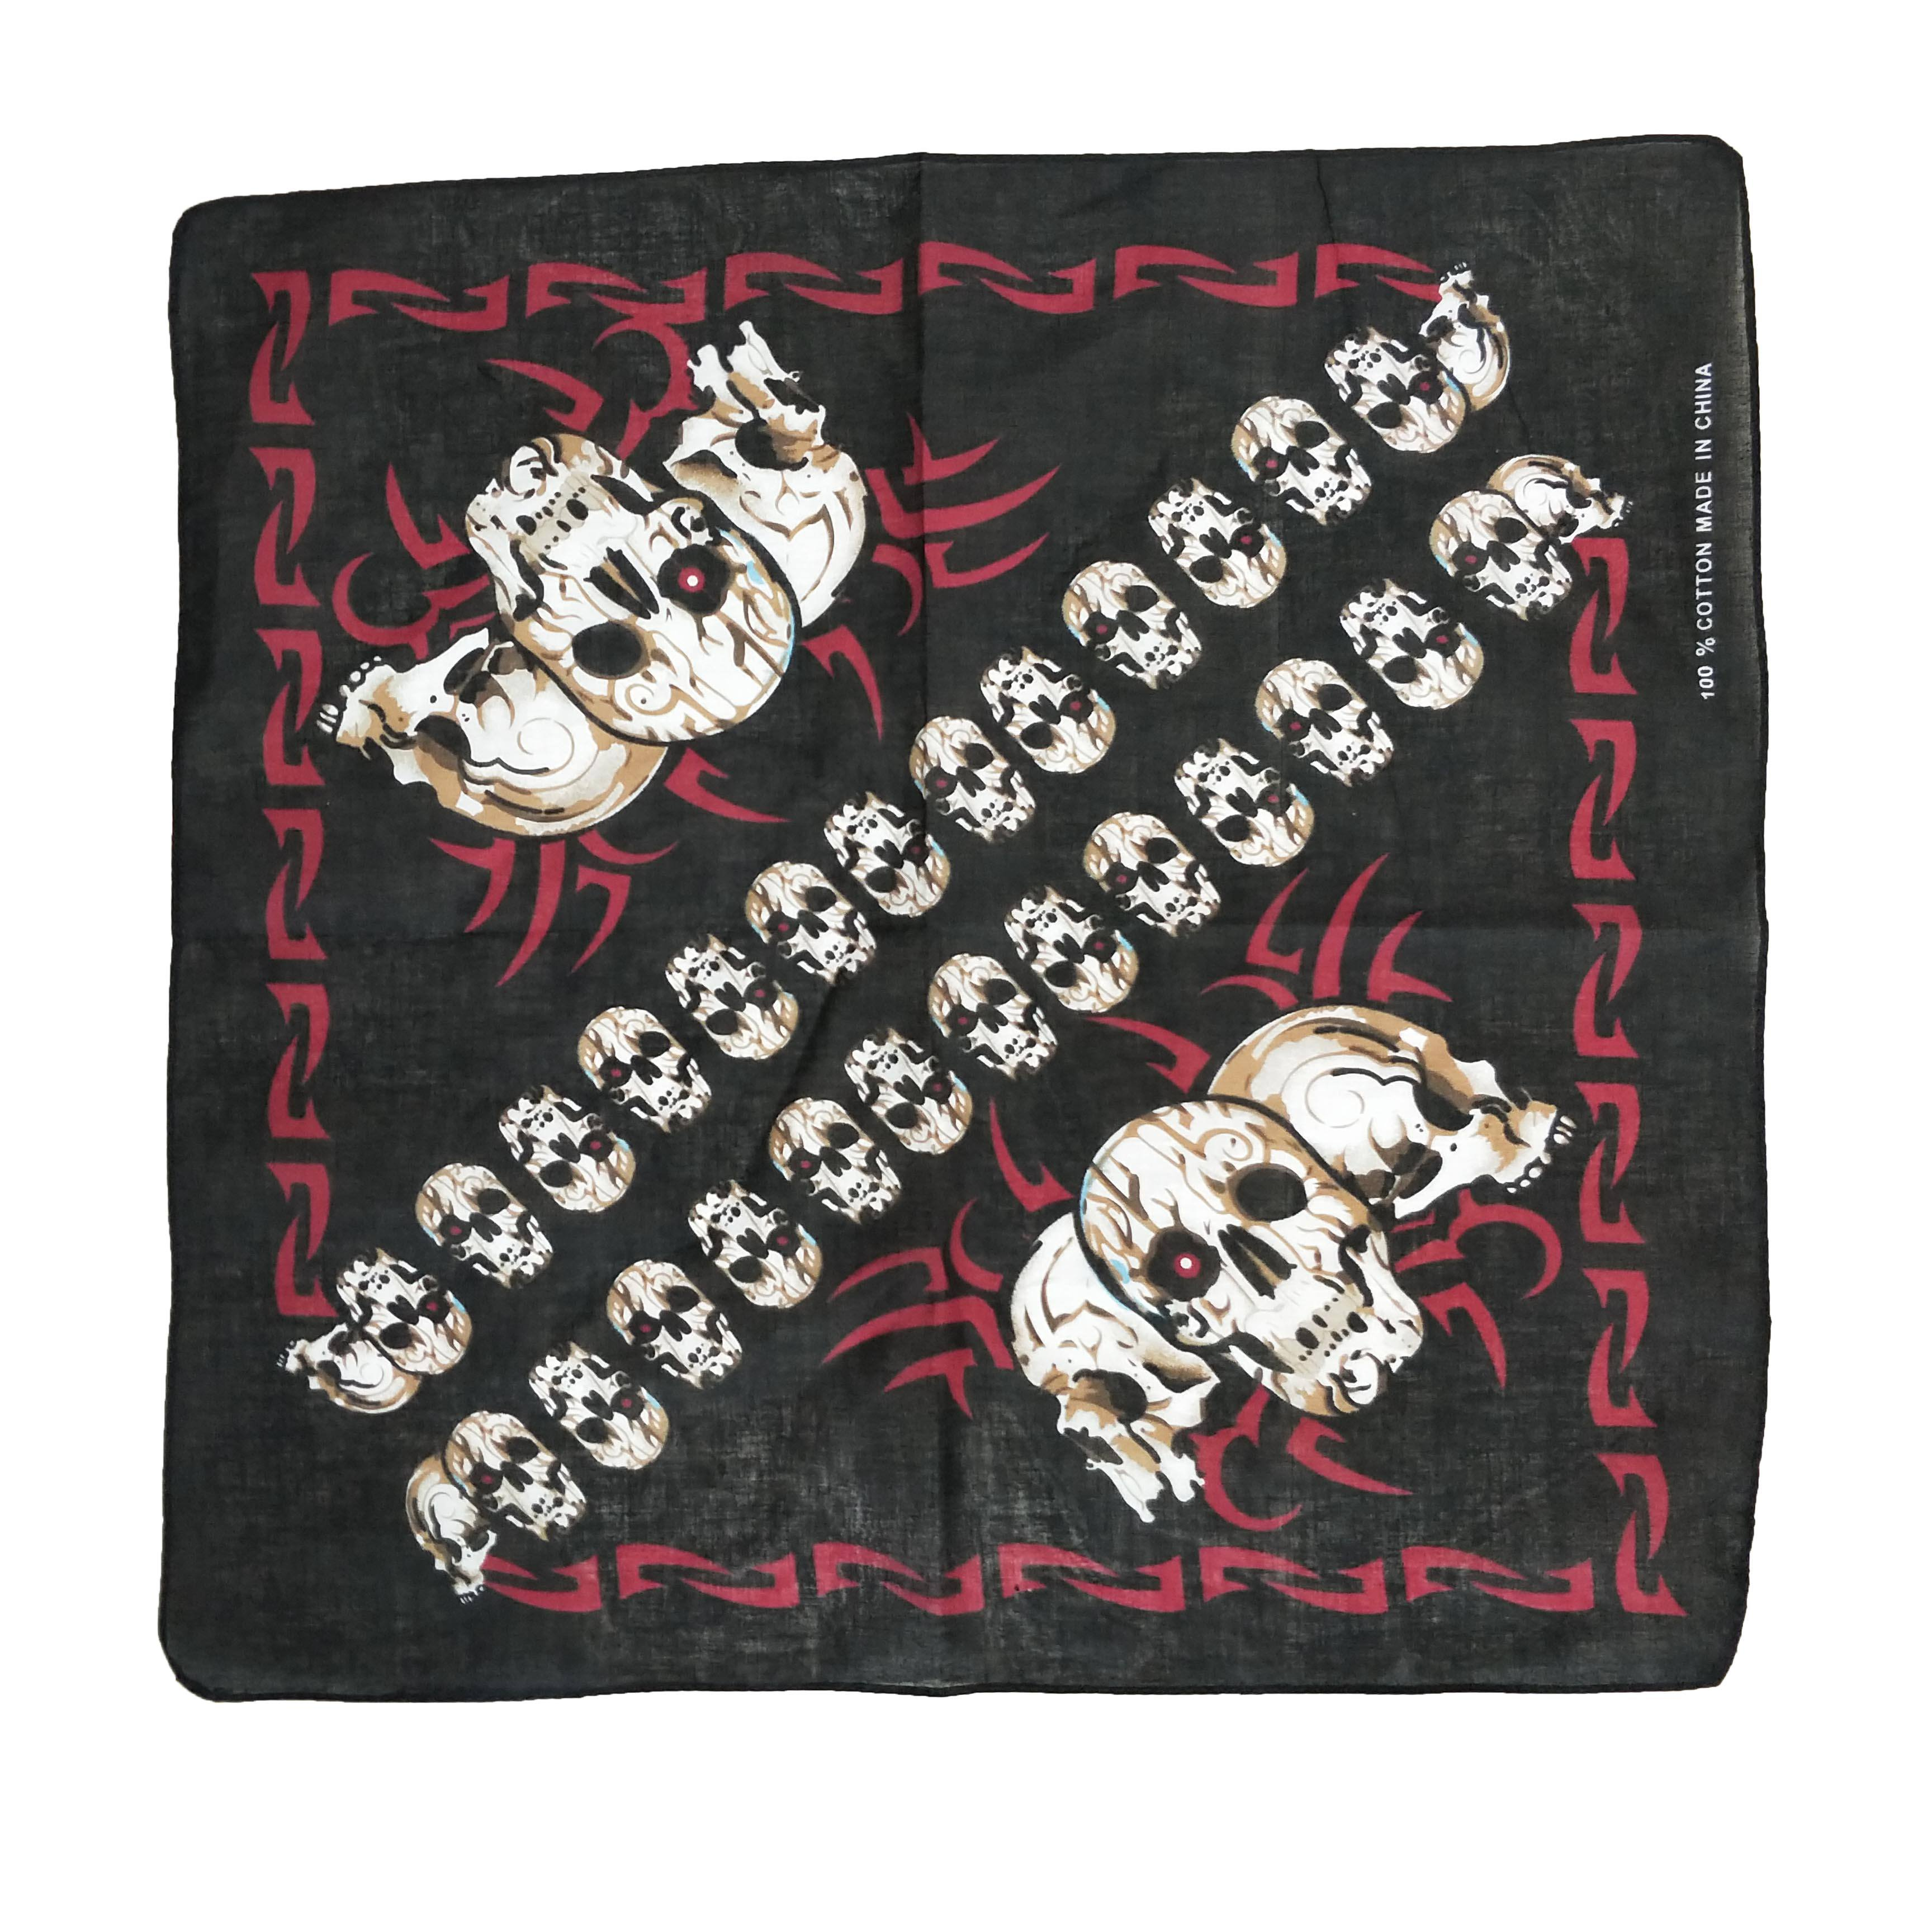 Skull Bandana 100/% Cotton Black with Fiery White Skulls 22 inch Scarf Wrap